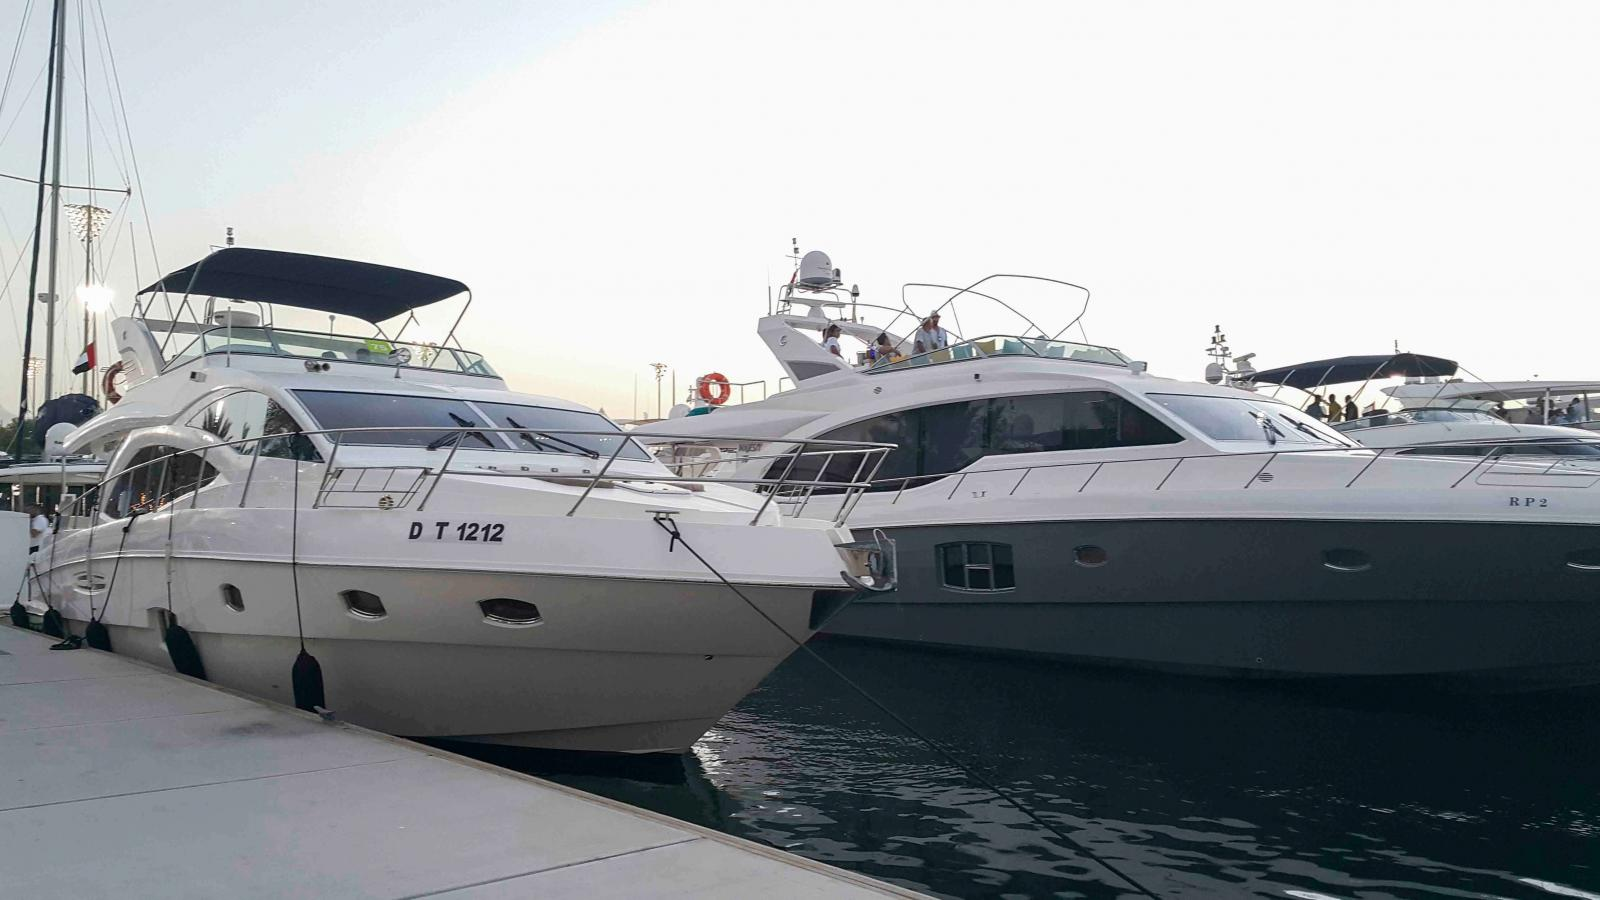 Gulf Craft - Majesty Yachts in YAS Marine Abu Dhabi during the F1